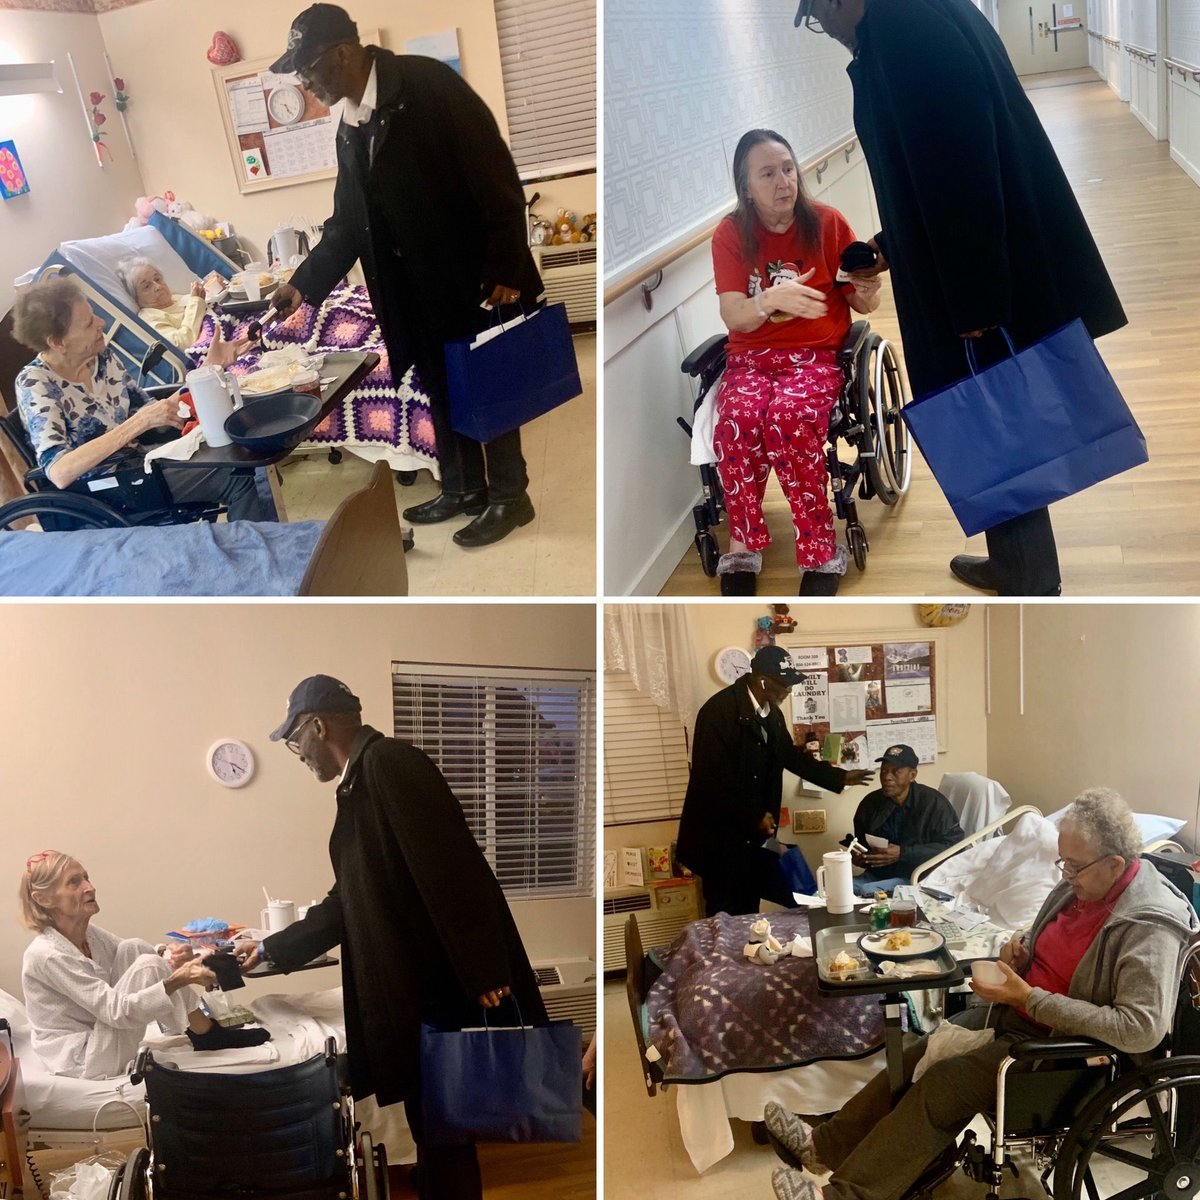 We are so grateful to those who volunteer to help The JDF bring comfort to others.  #Socks mean a lot to these folks. #Bombas 4 supporting us! http://jdffeet.org #giveaway #love #nonprofits #charity #blessed #CalledToServe #BeTheChange #ThursdayThoughts #ThursdayMotivation